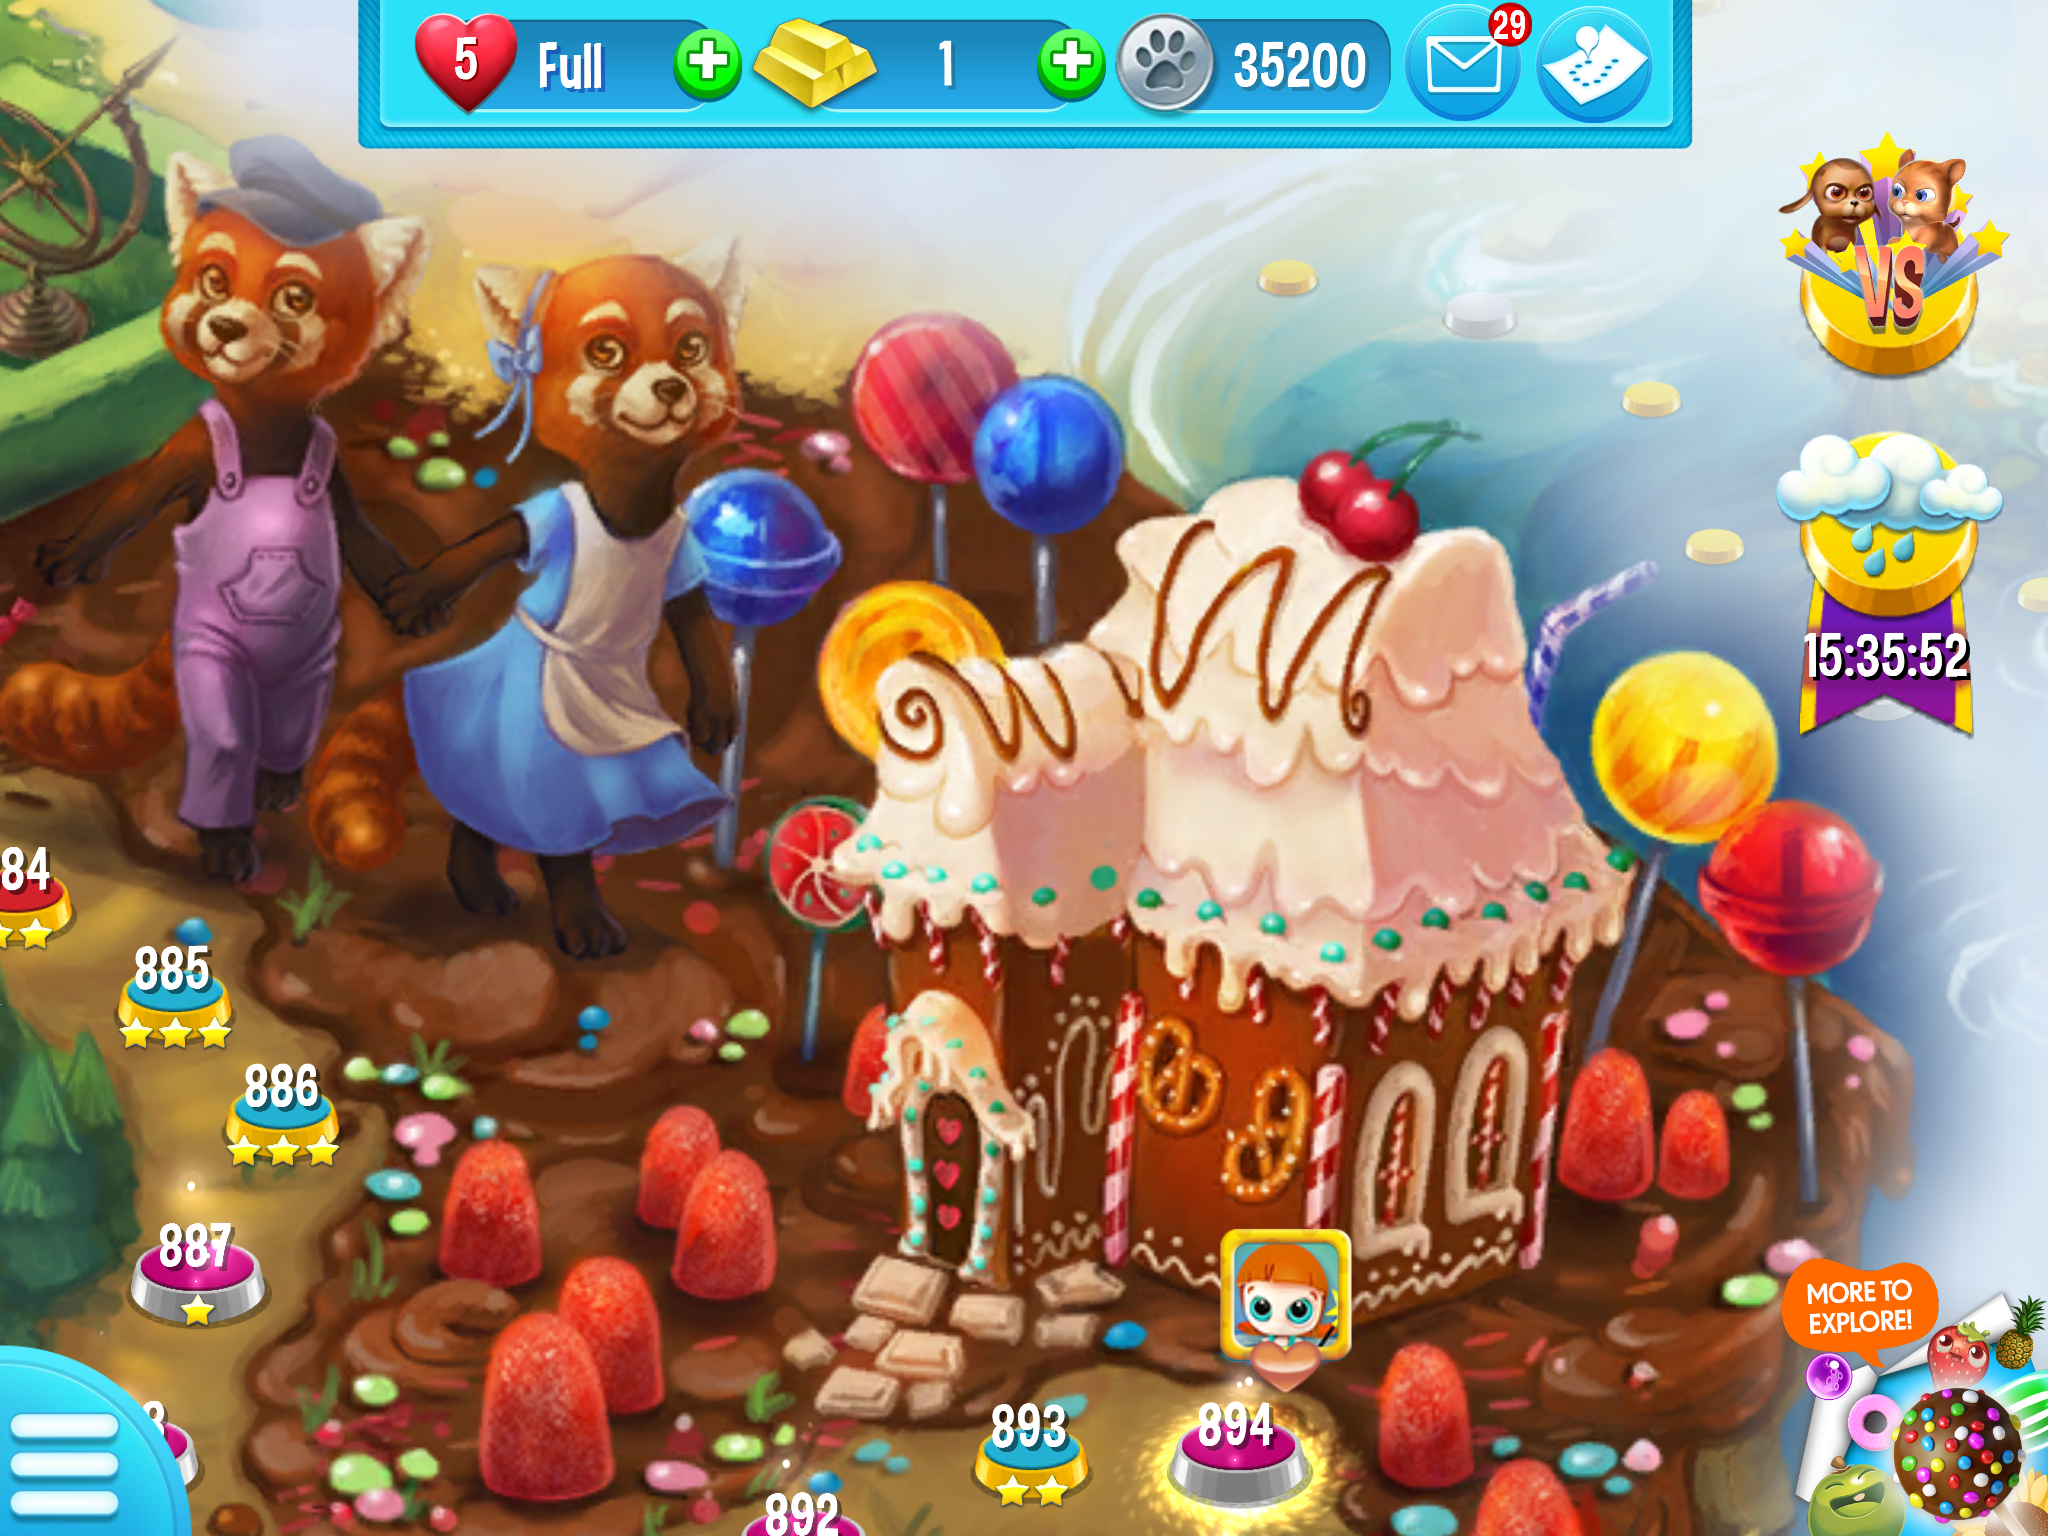 Gosh This Looks So Yummy I M In The Fable Forest Of Pet Rescue Saga Now At Level 894 Pet Rescue Saga Mobile Game Anime